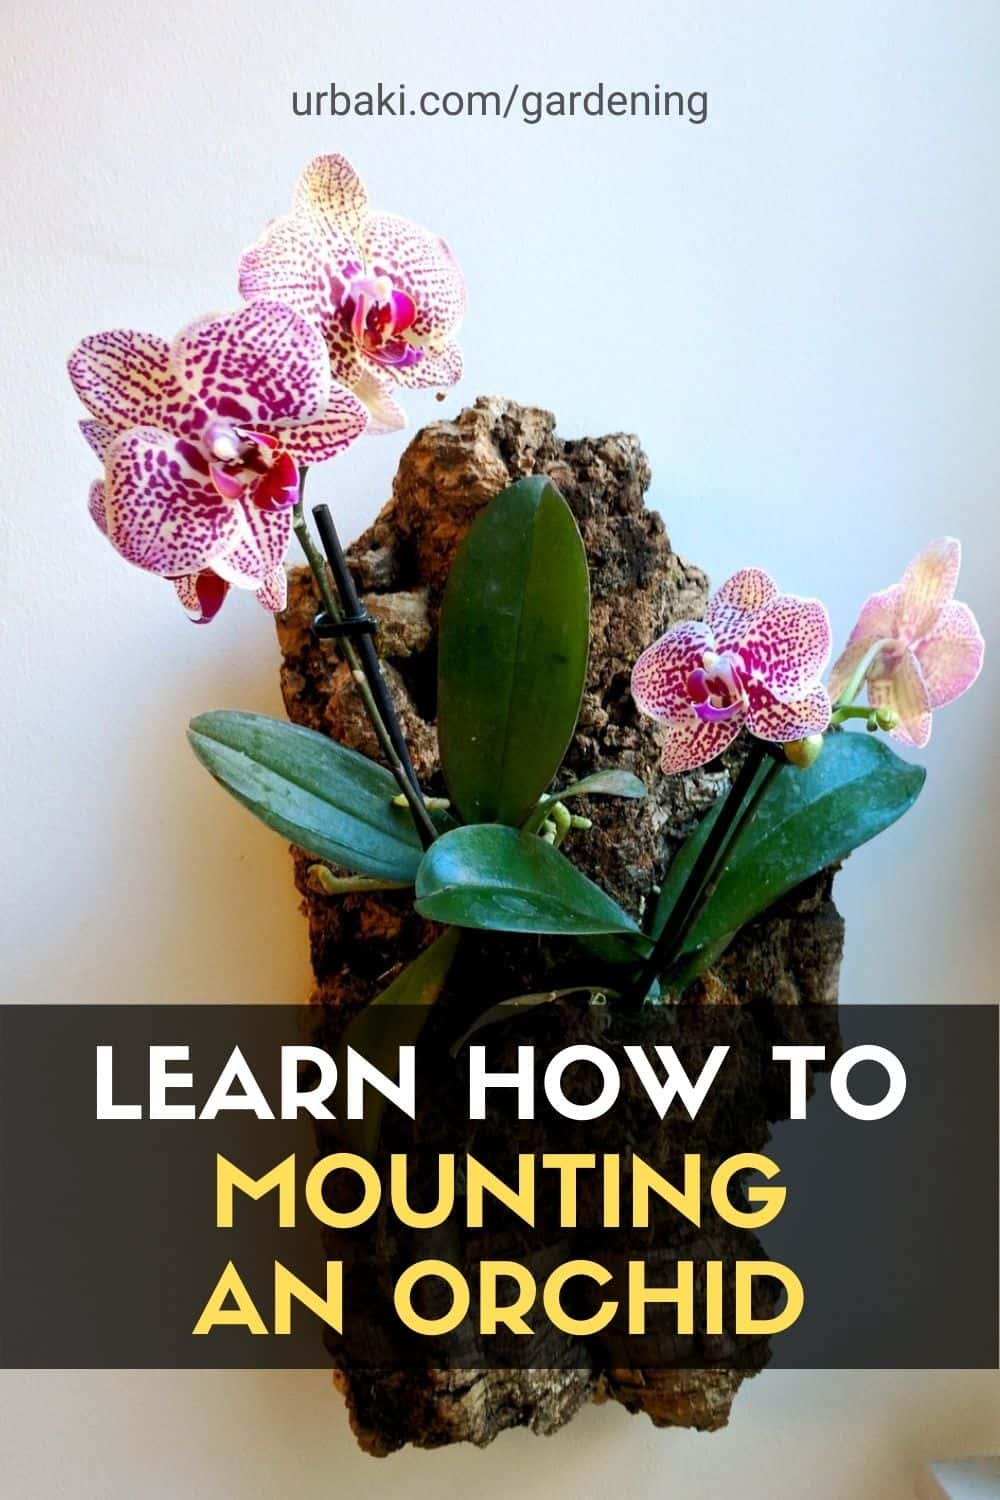 Mounting an Orchid